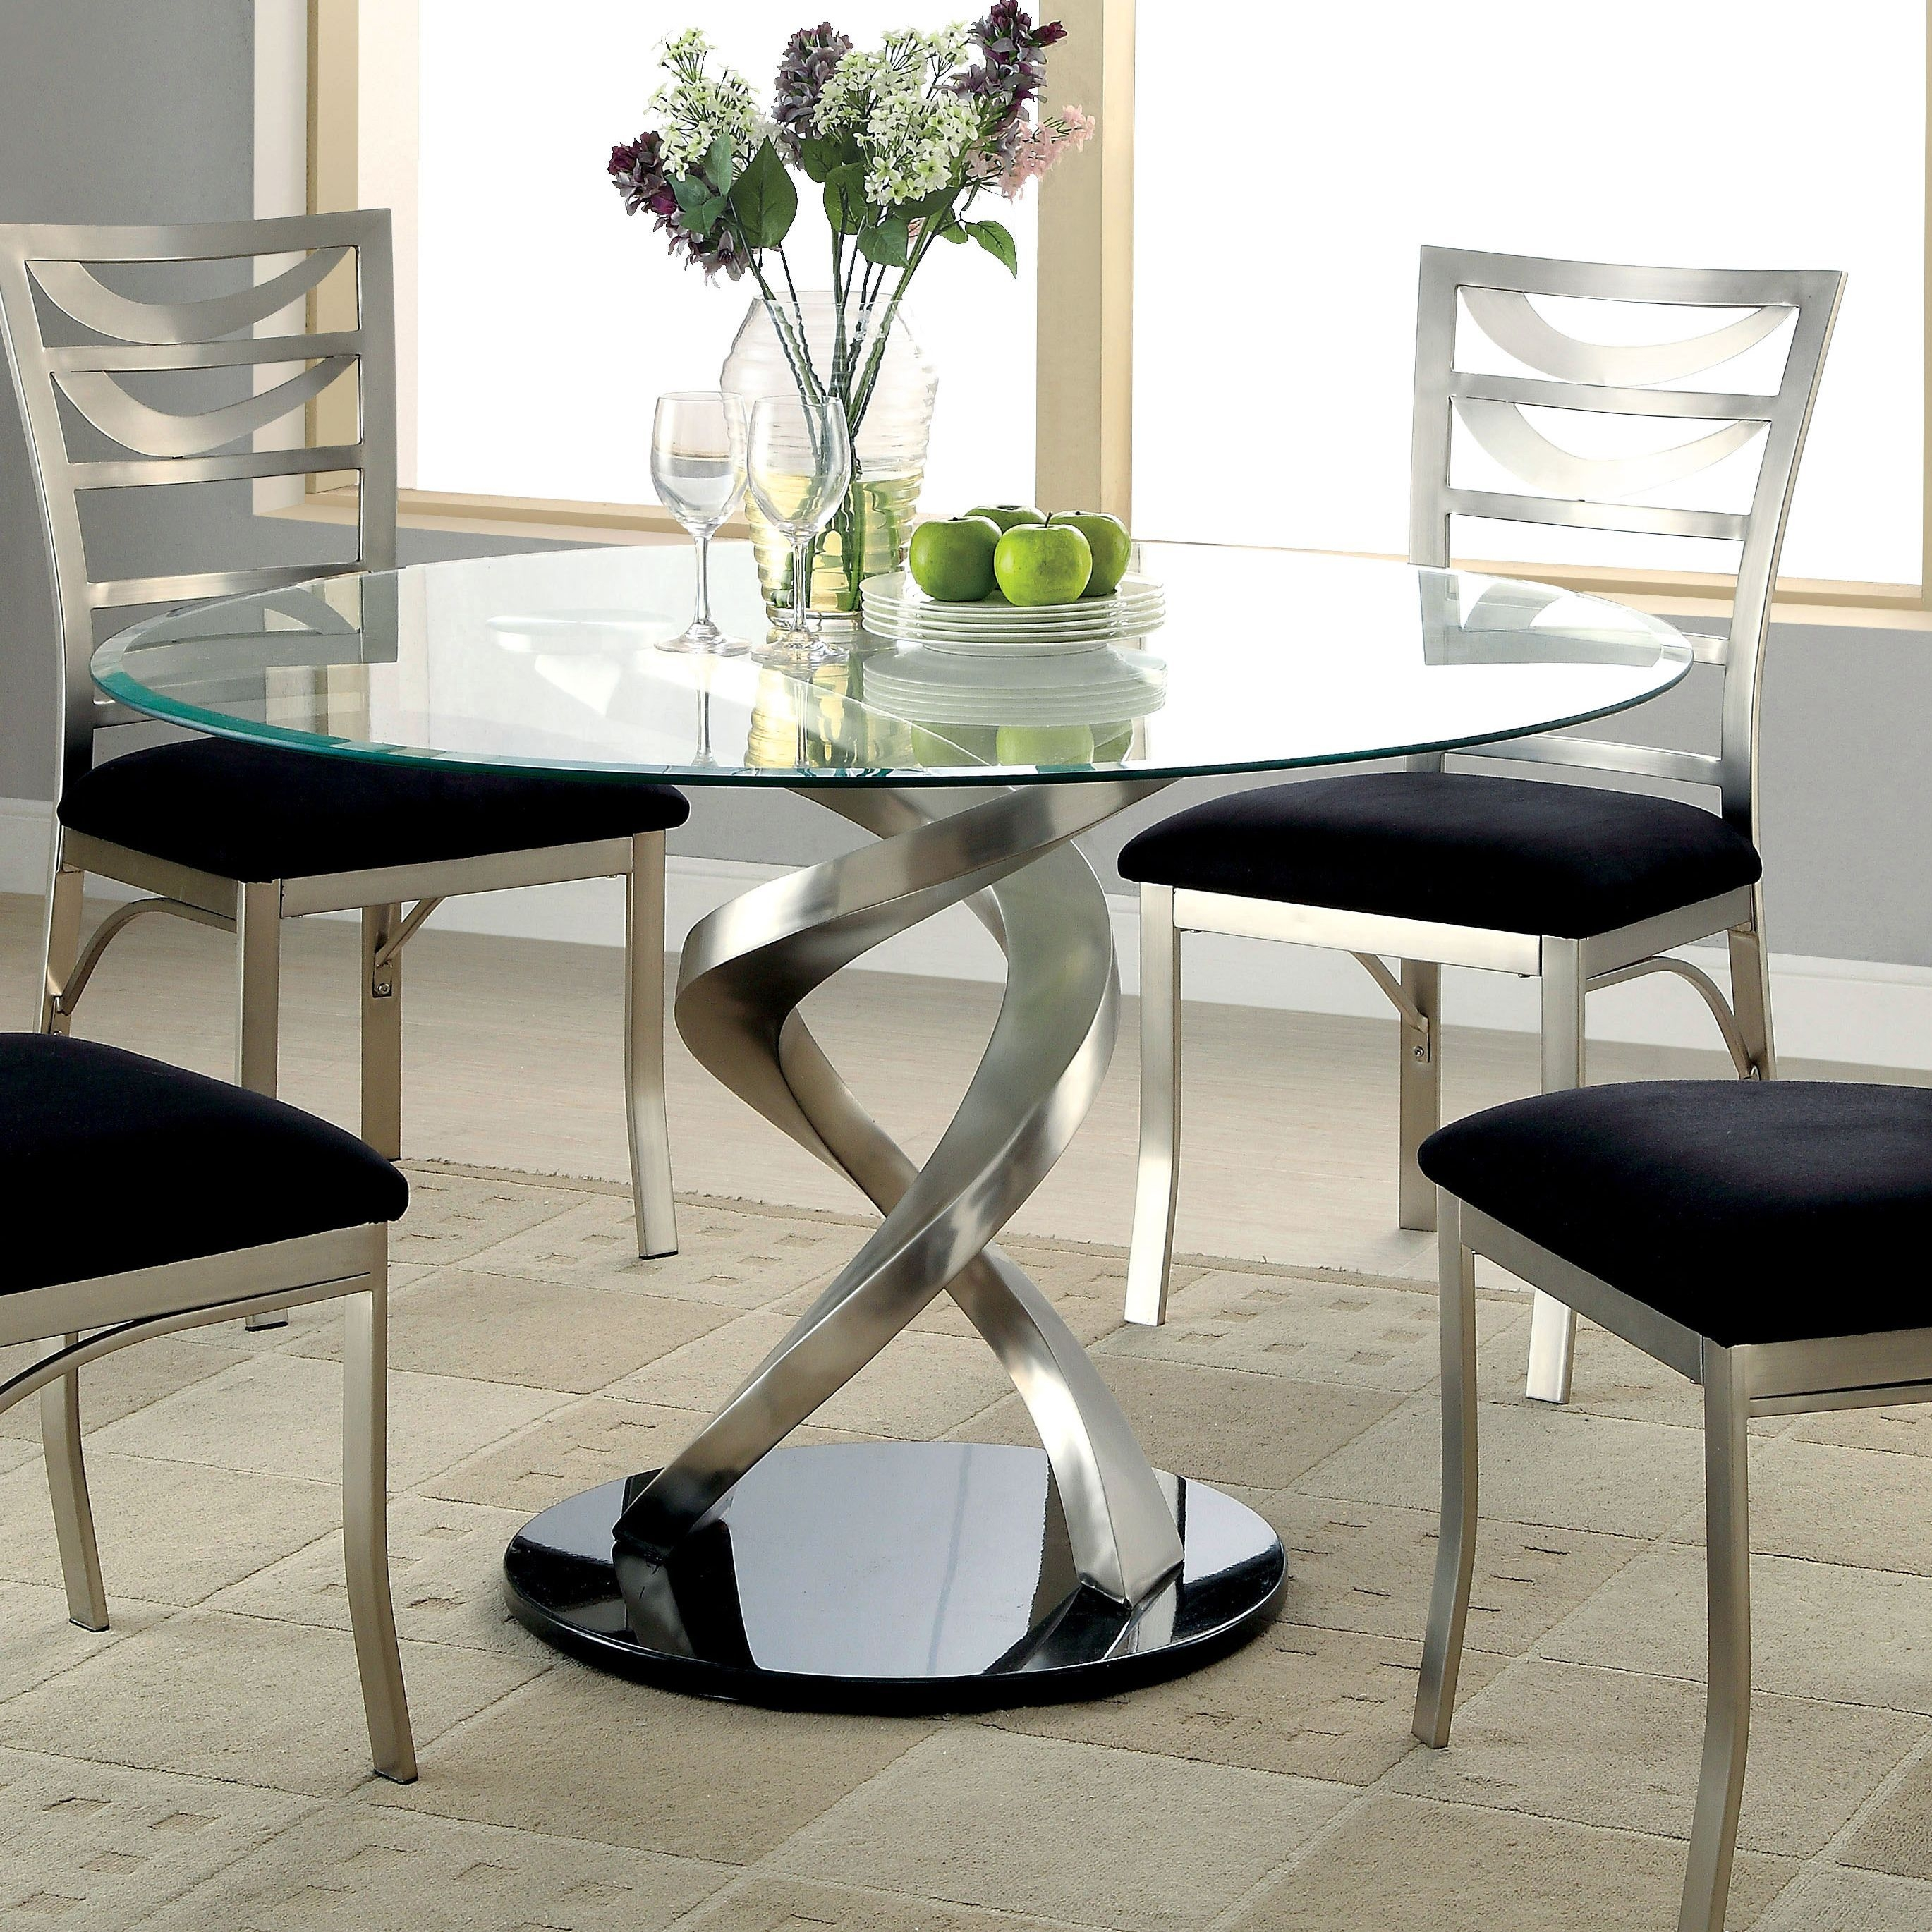 bring modern sculpture designs to the dining room with this elegant